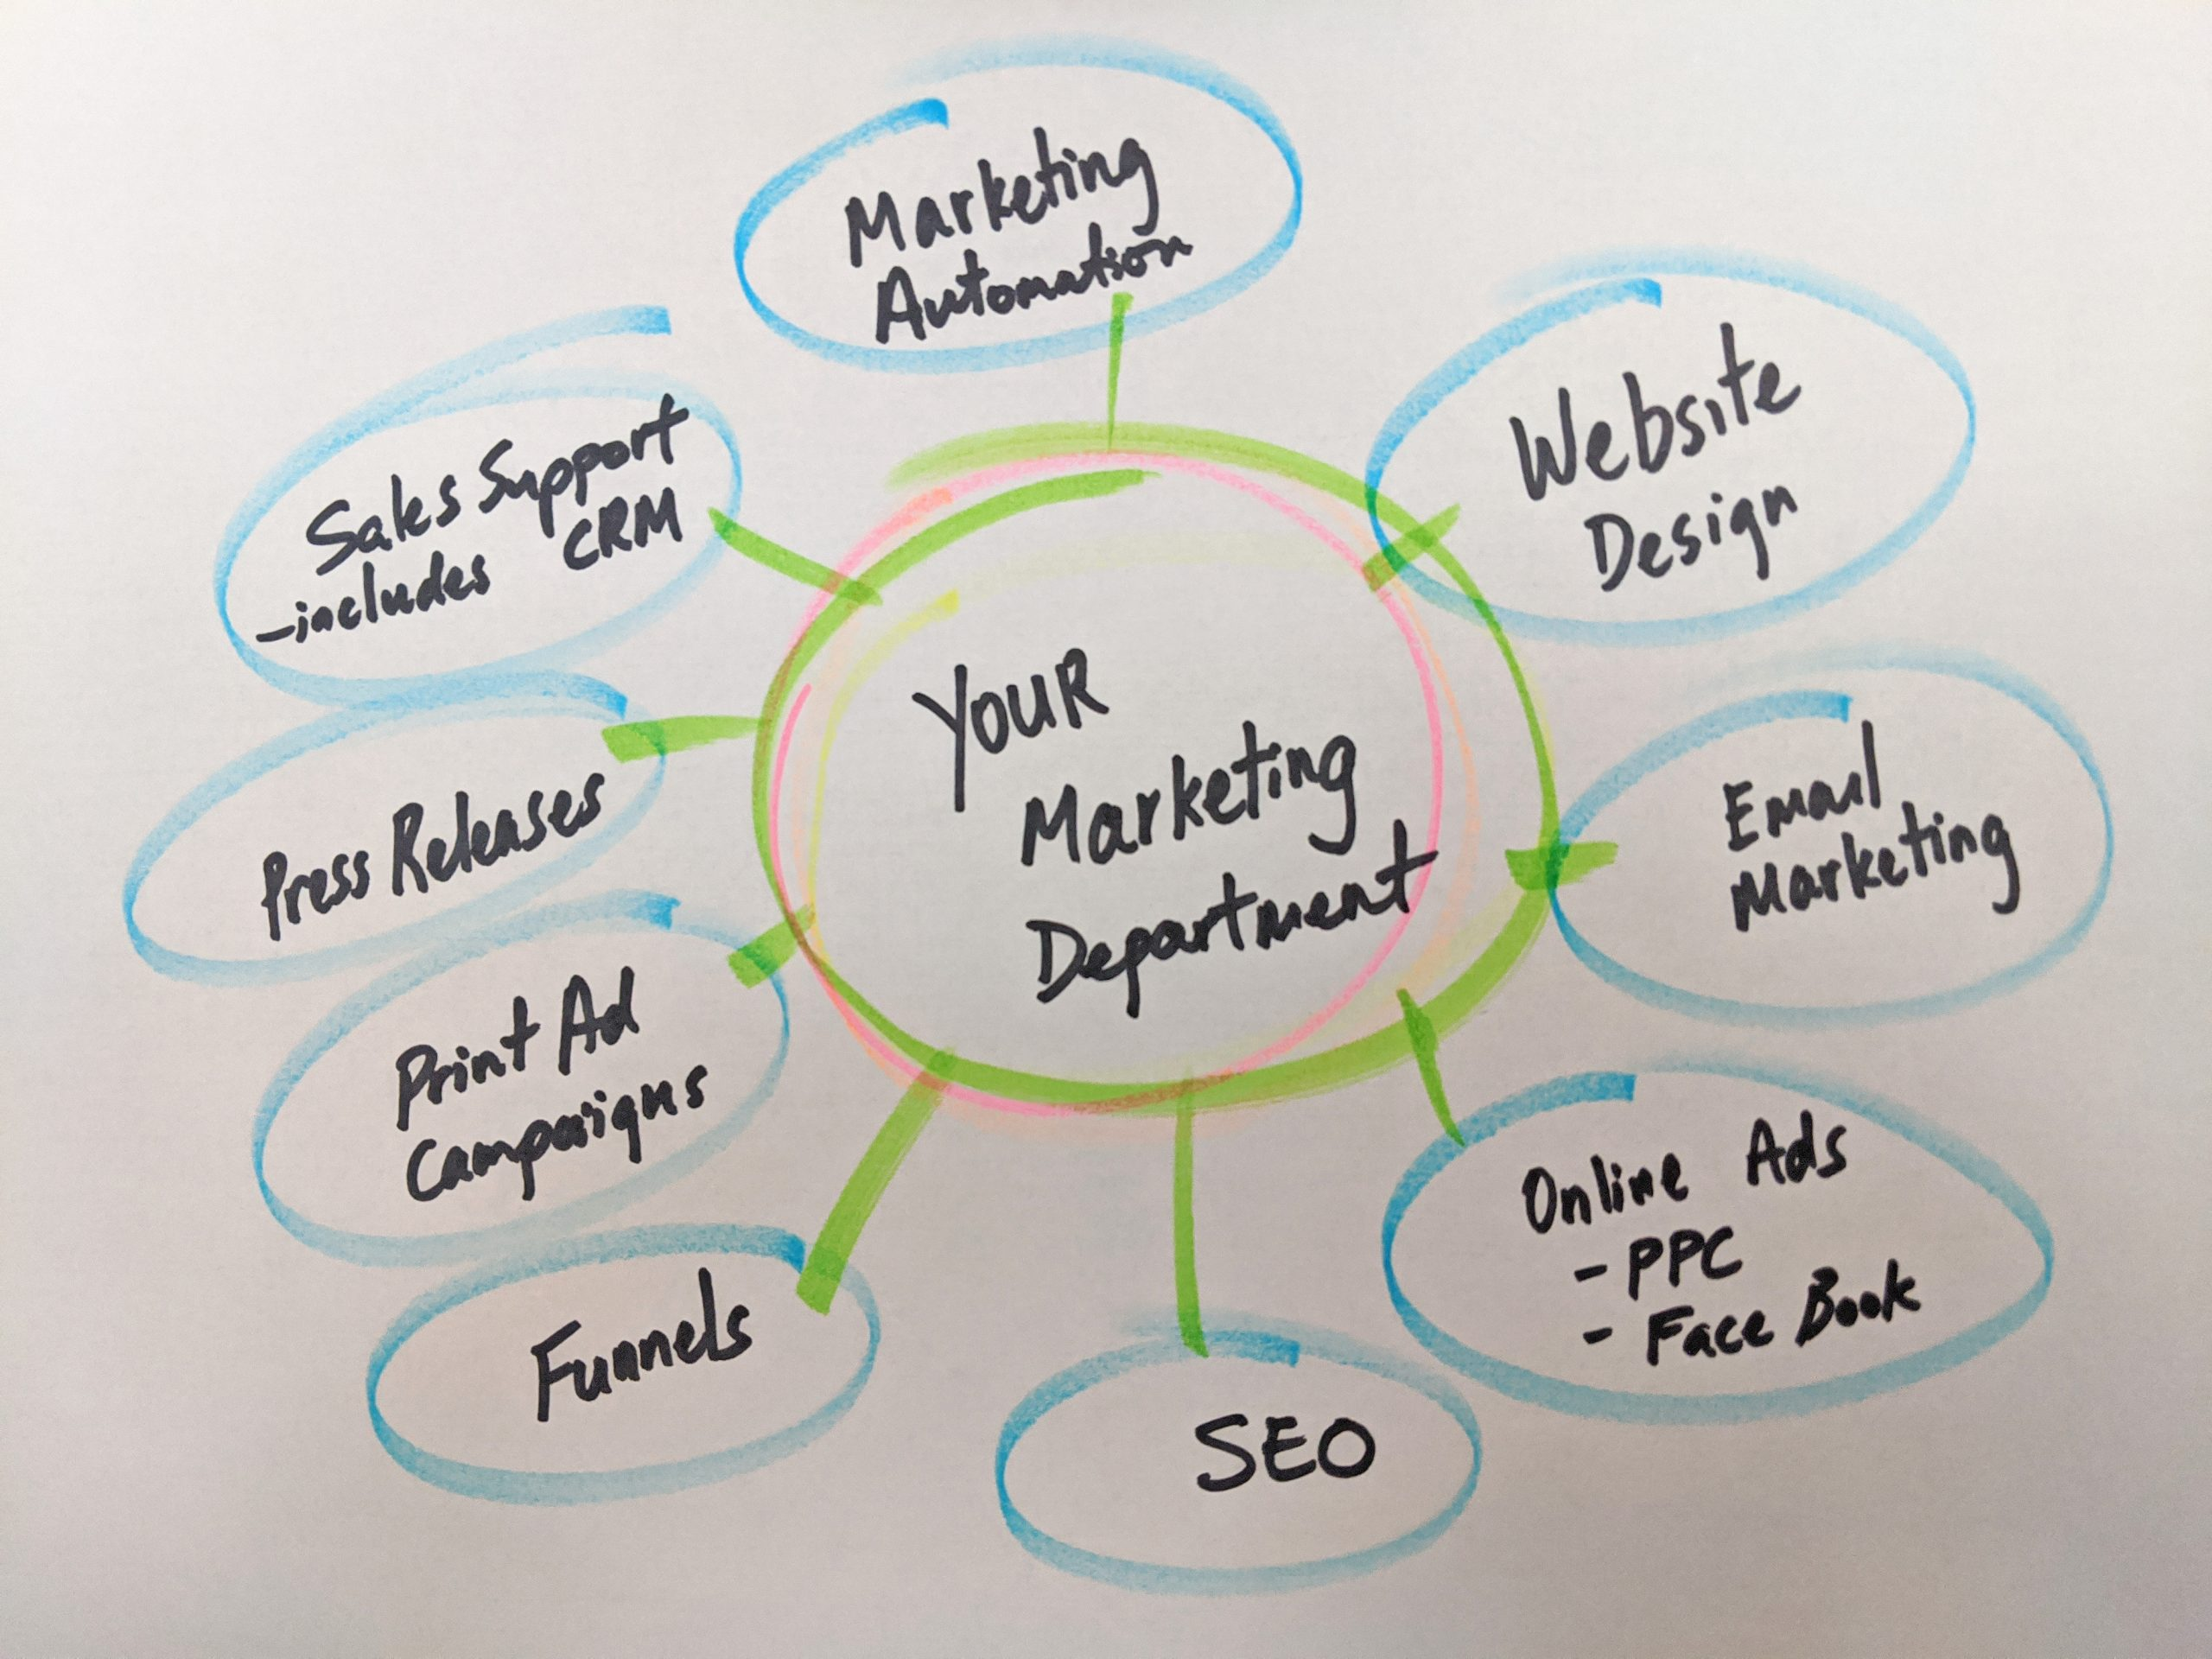 houston marketing services including SEO, website design, marketing automation